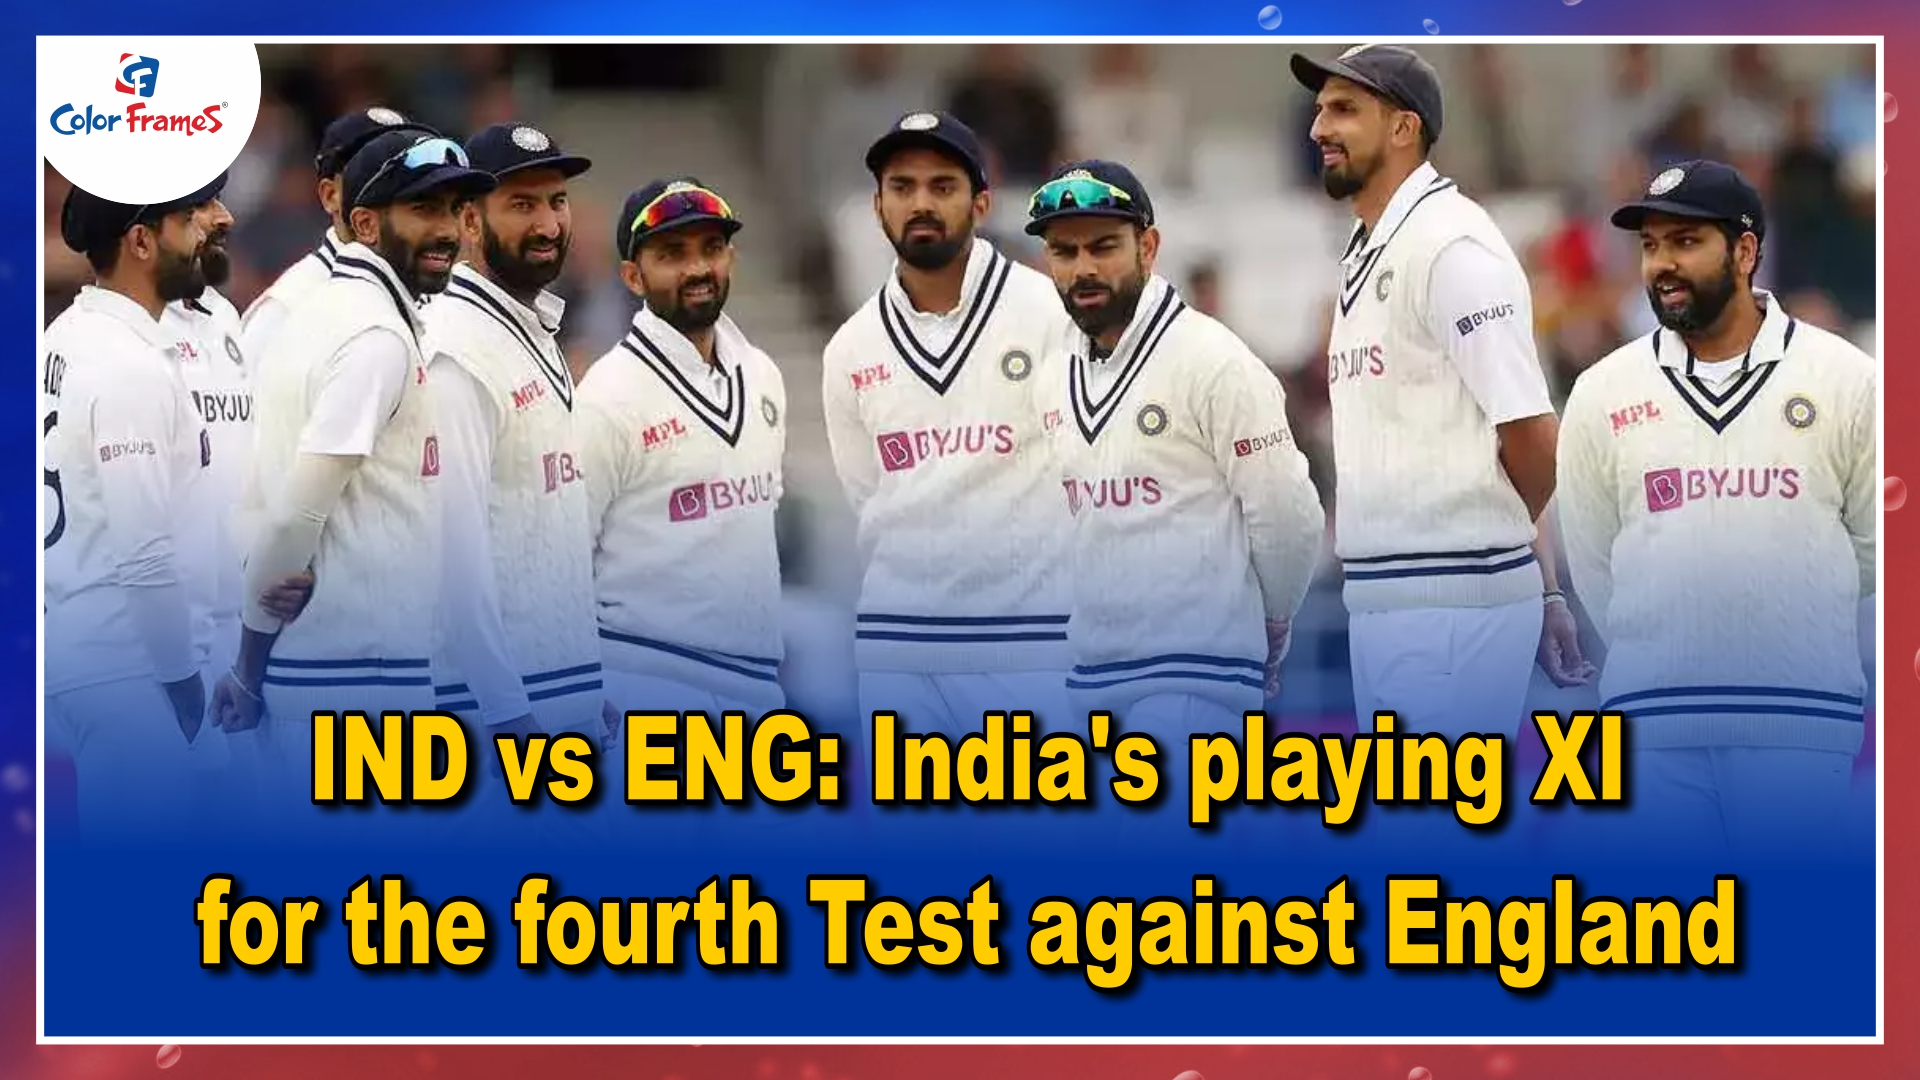 IND vs ENG: India's playing XI for the fourth Test against England